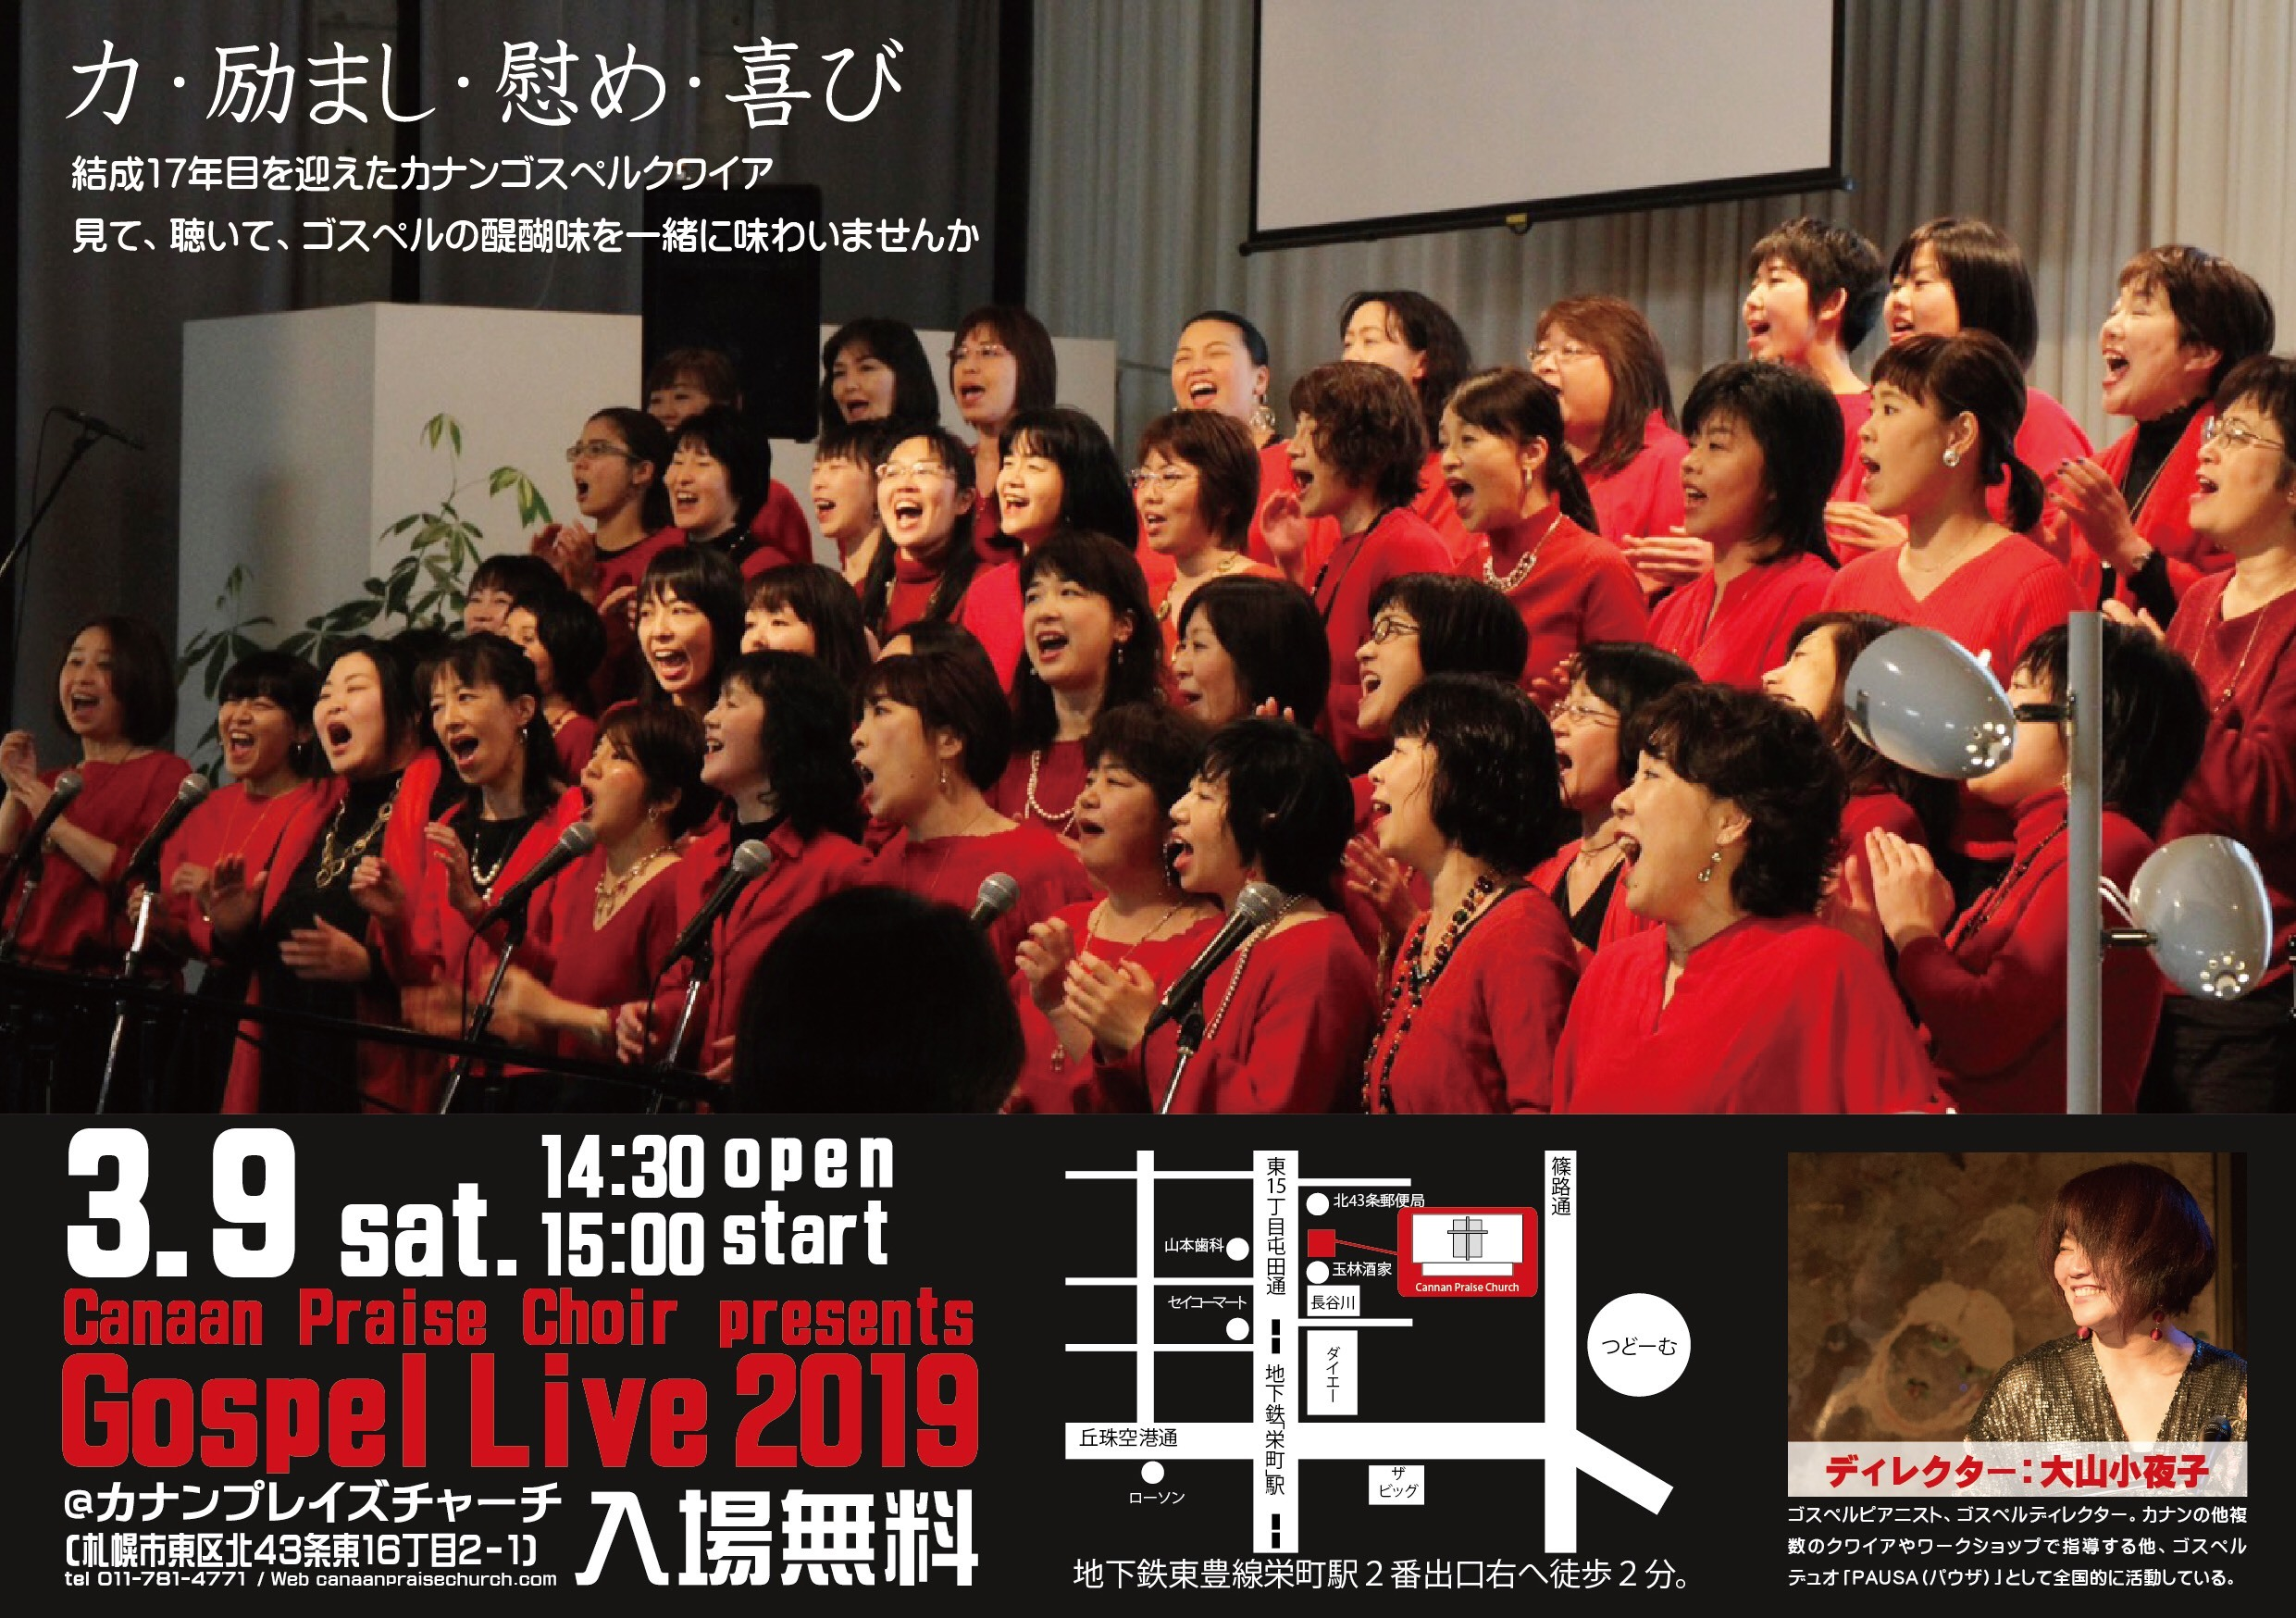 [2019.3.9 SAT] Canaan Praise Choir presents Gospel Live 2019